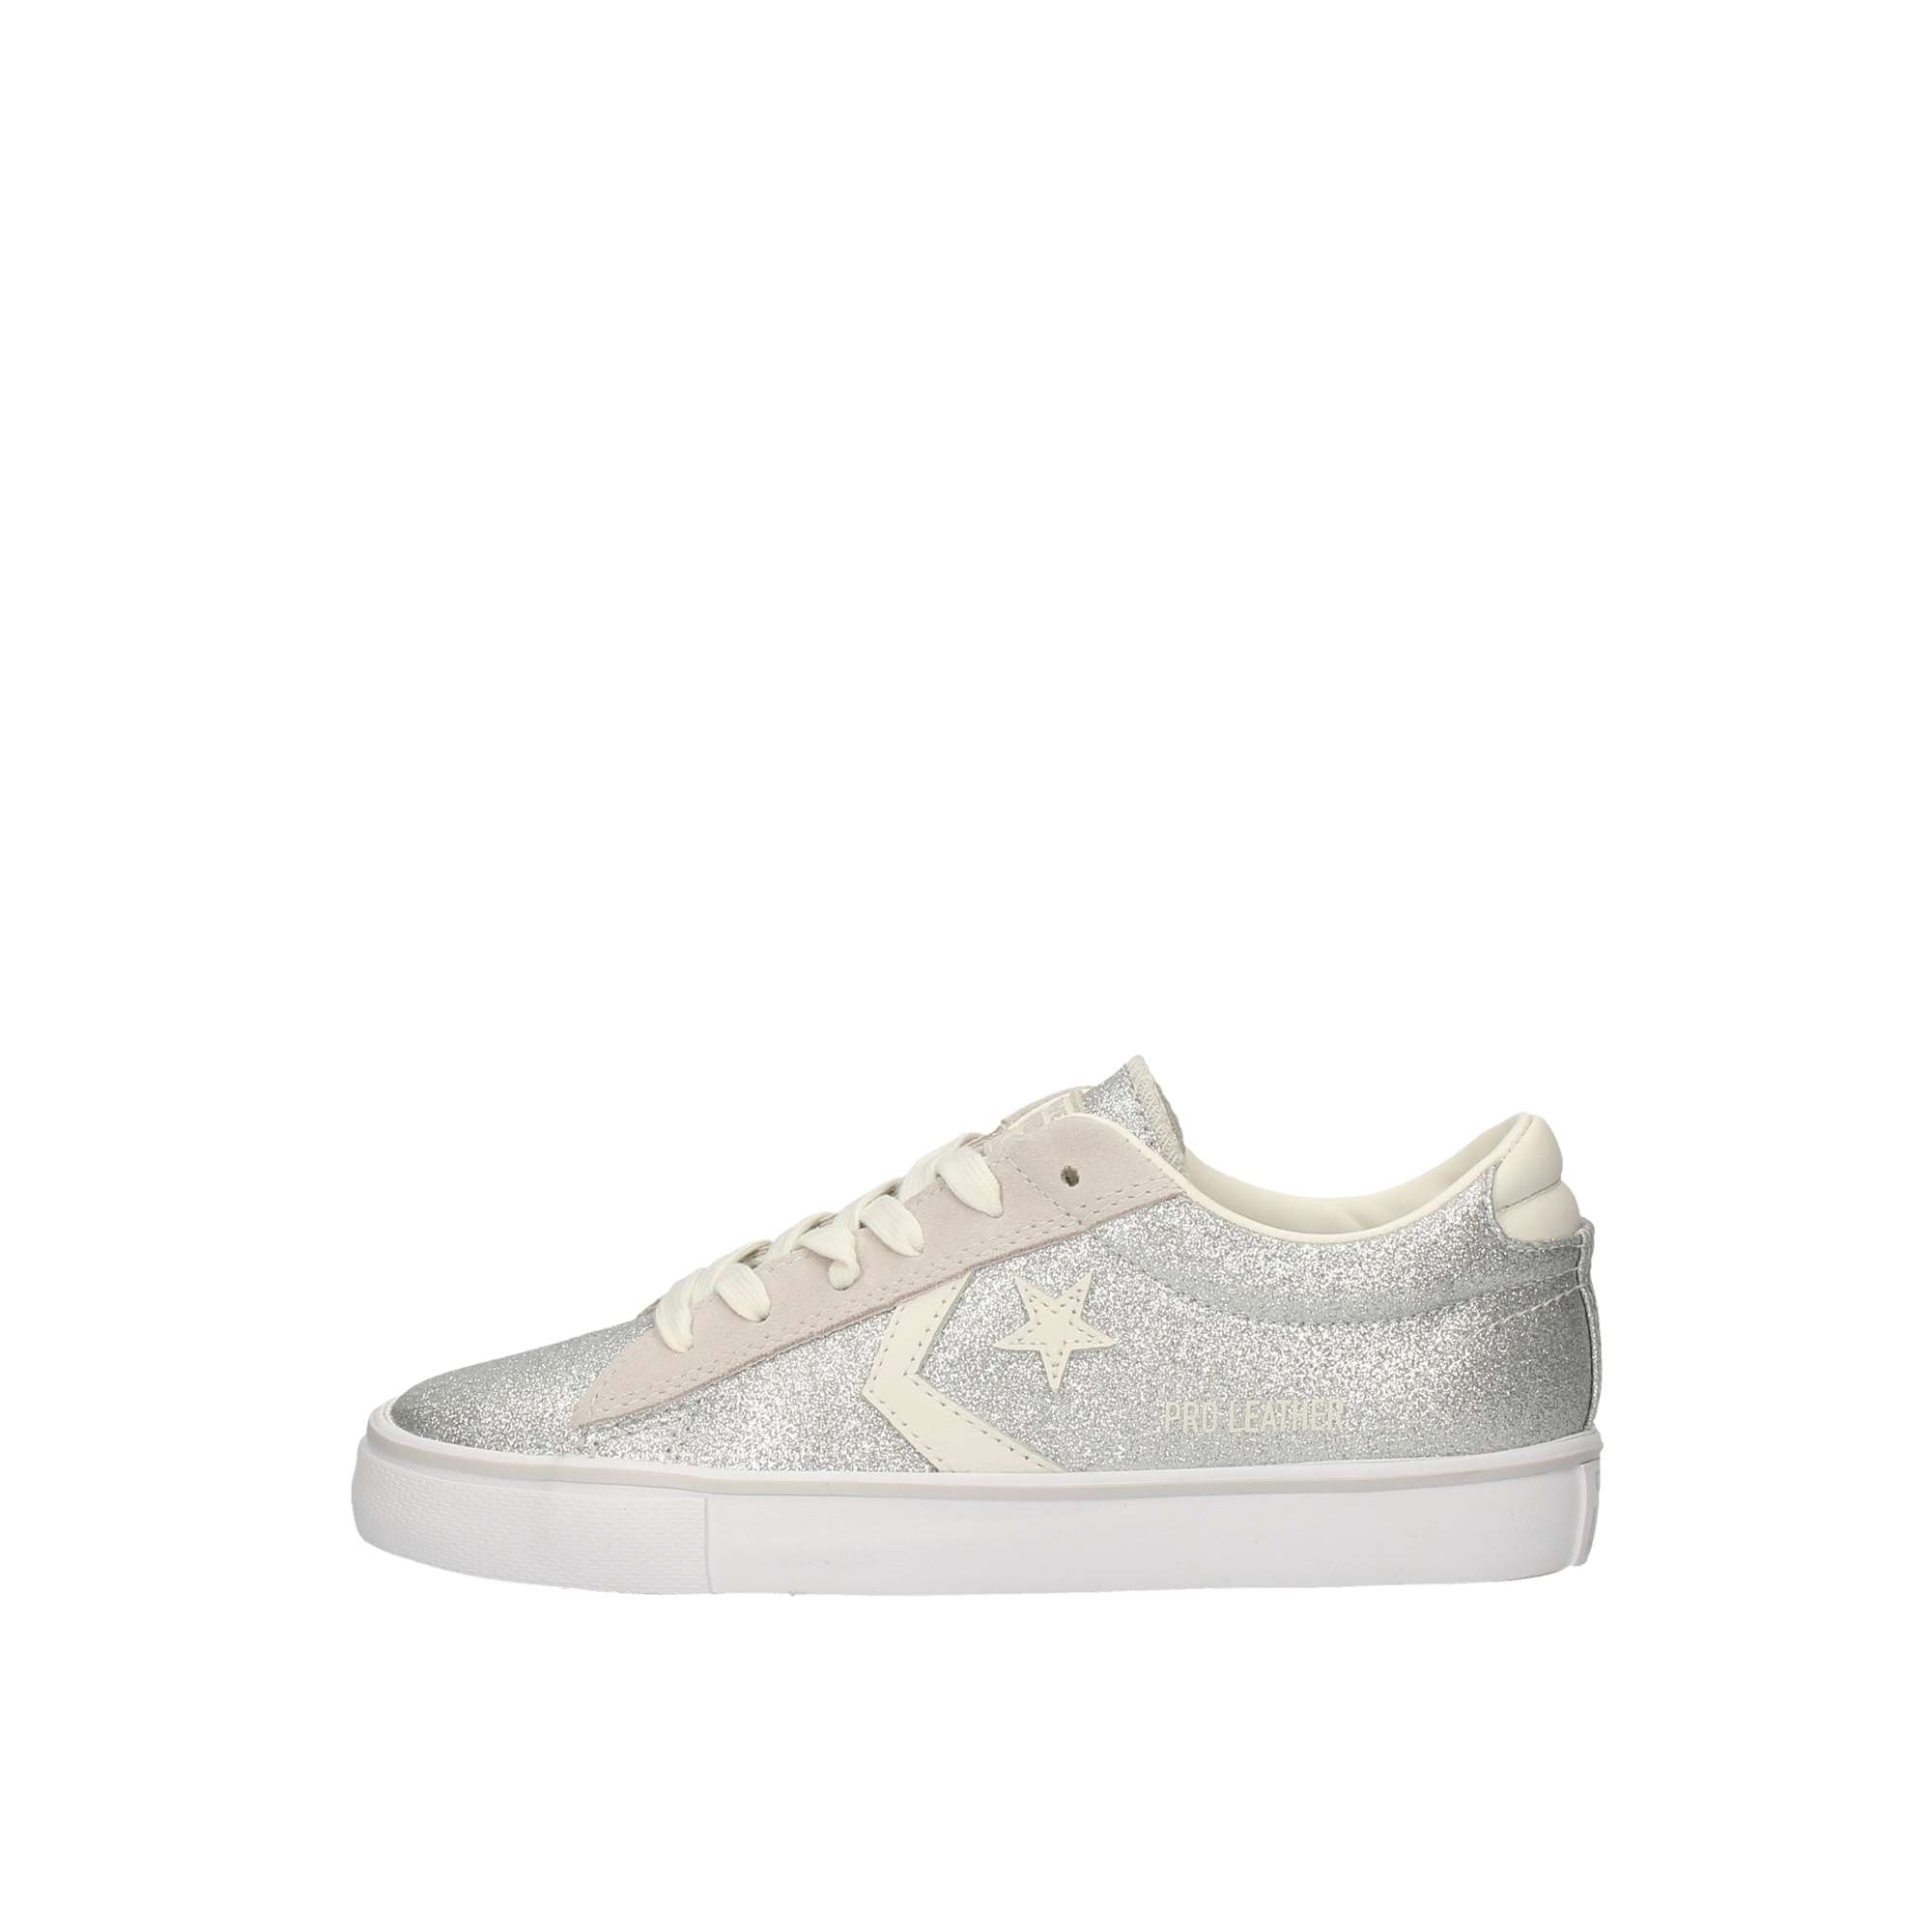 Alta qualit SNEAKERS Donna CONVERSE 560969C Primavera/Estate